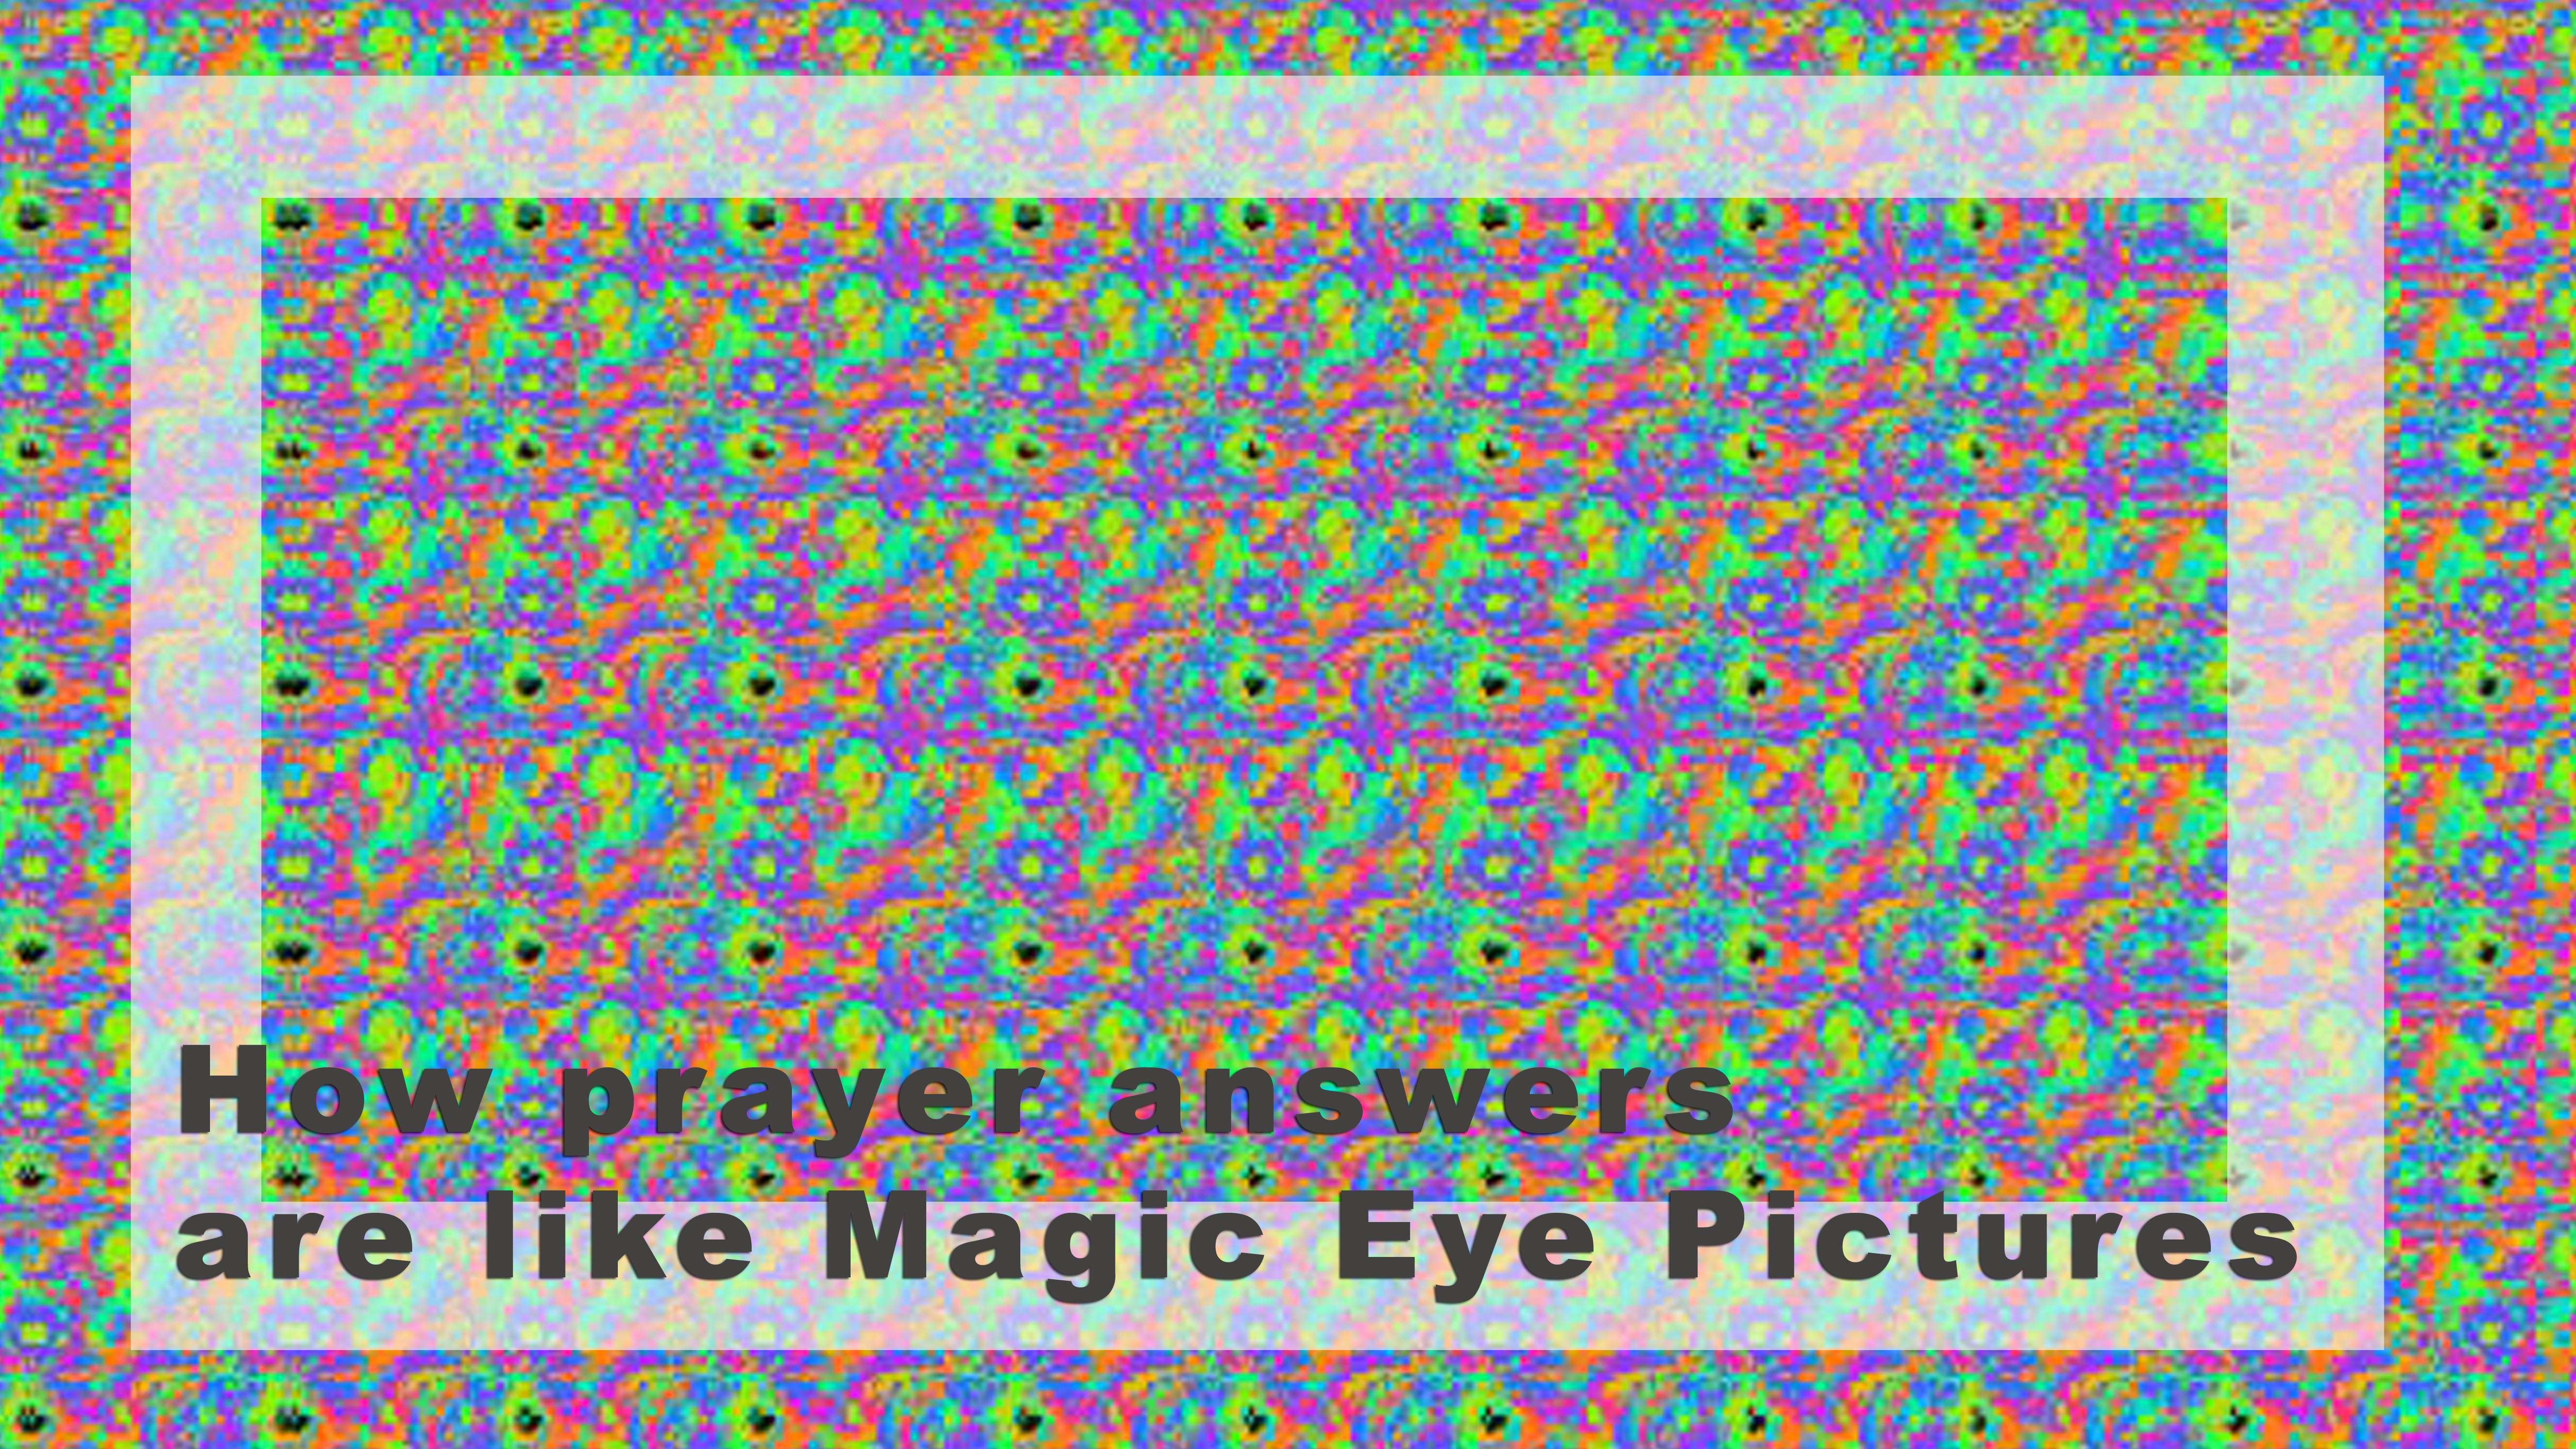 God's answers aren't like Magic Eye pictures